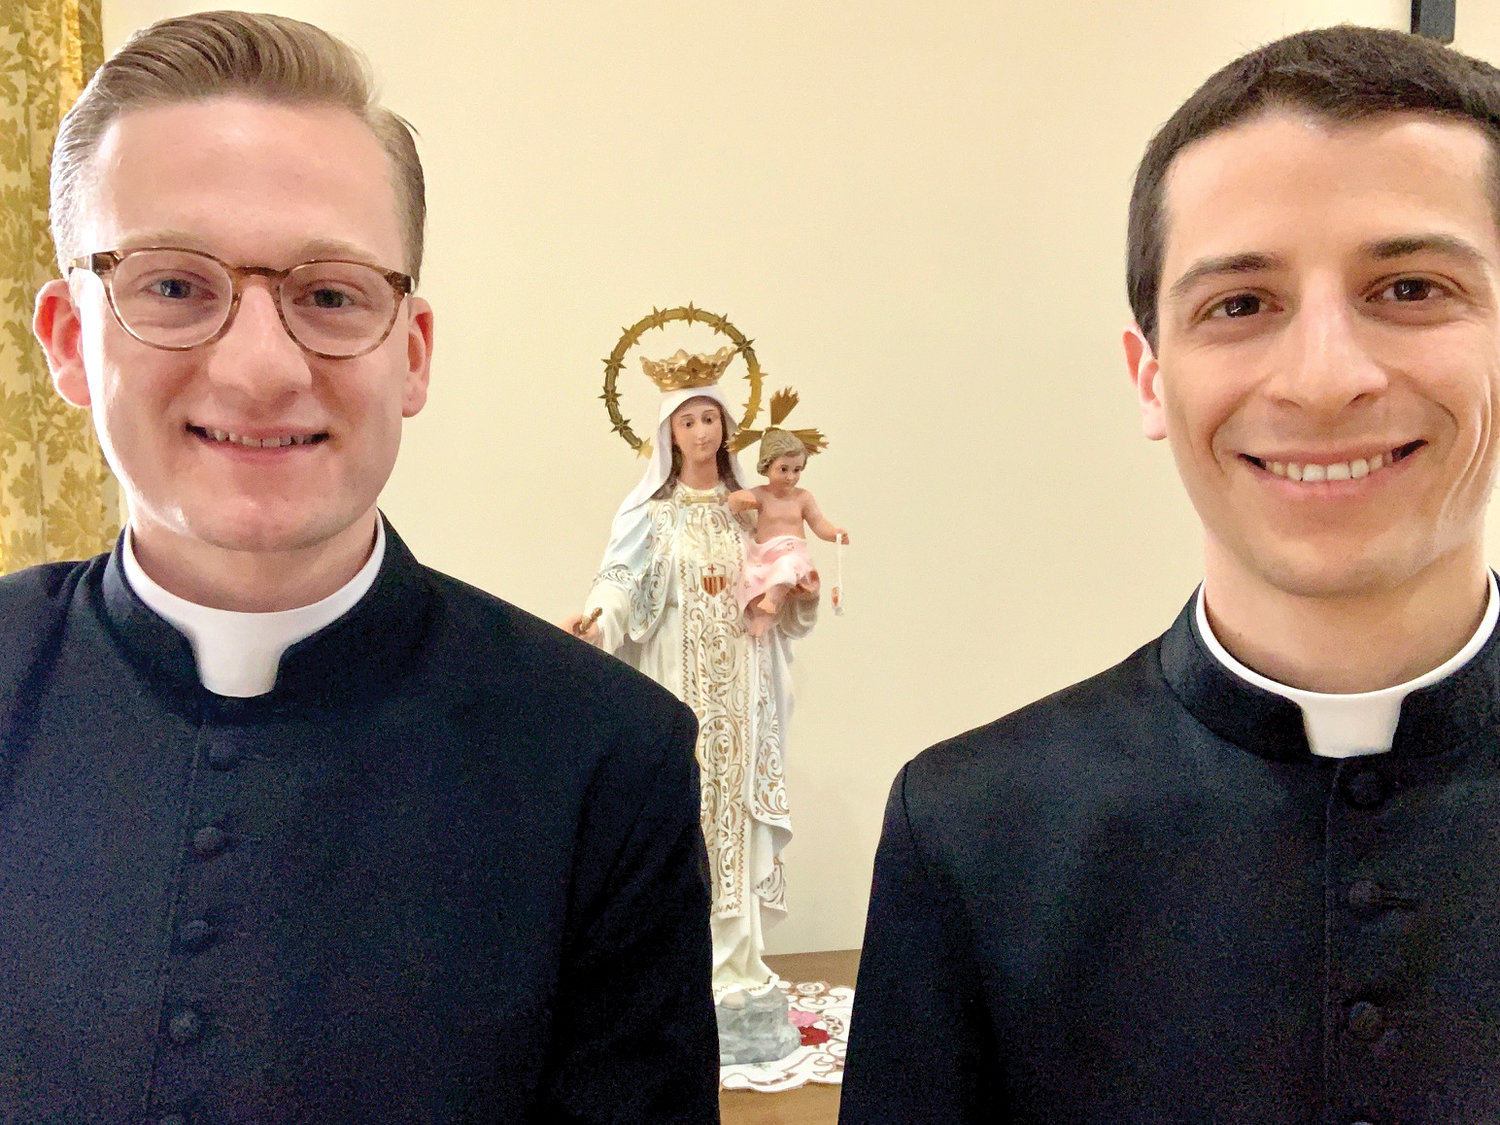 Father Michael Connolly, left, and Father Louis Masi are staying at an unoccupied retreat house while in isolation for the pastoral care mission to bring prayer and the sacraments to the sick and dying.